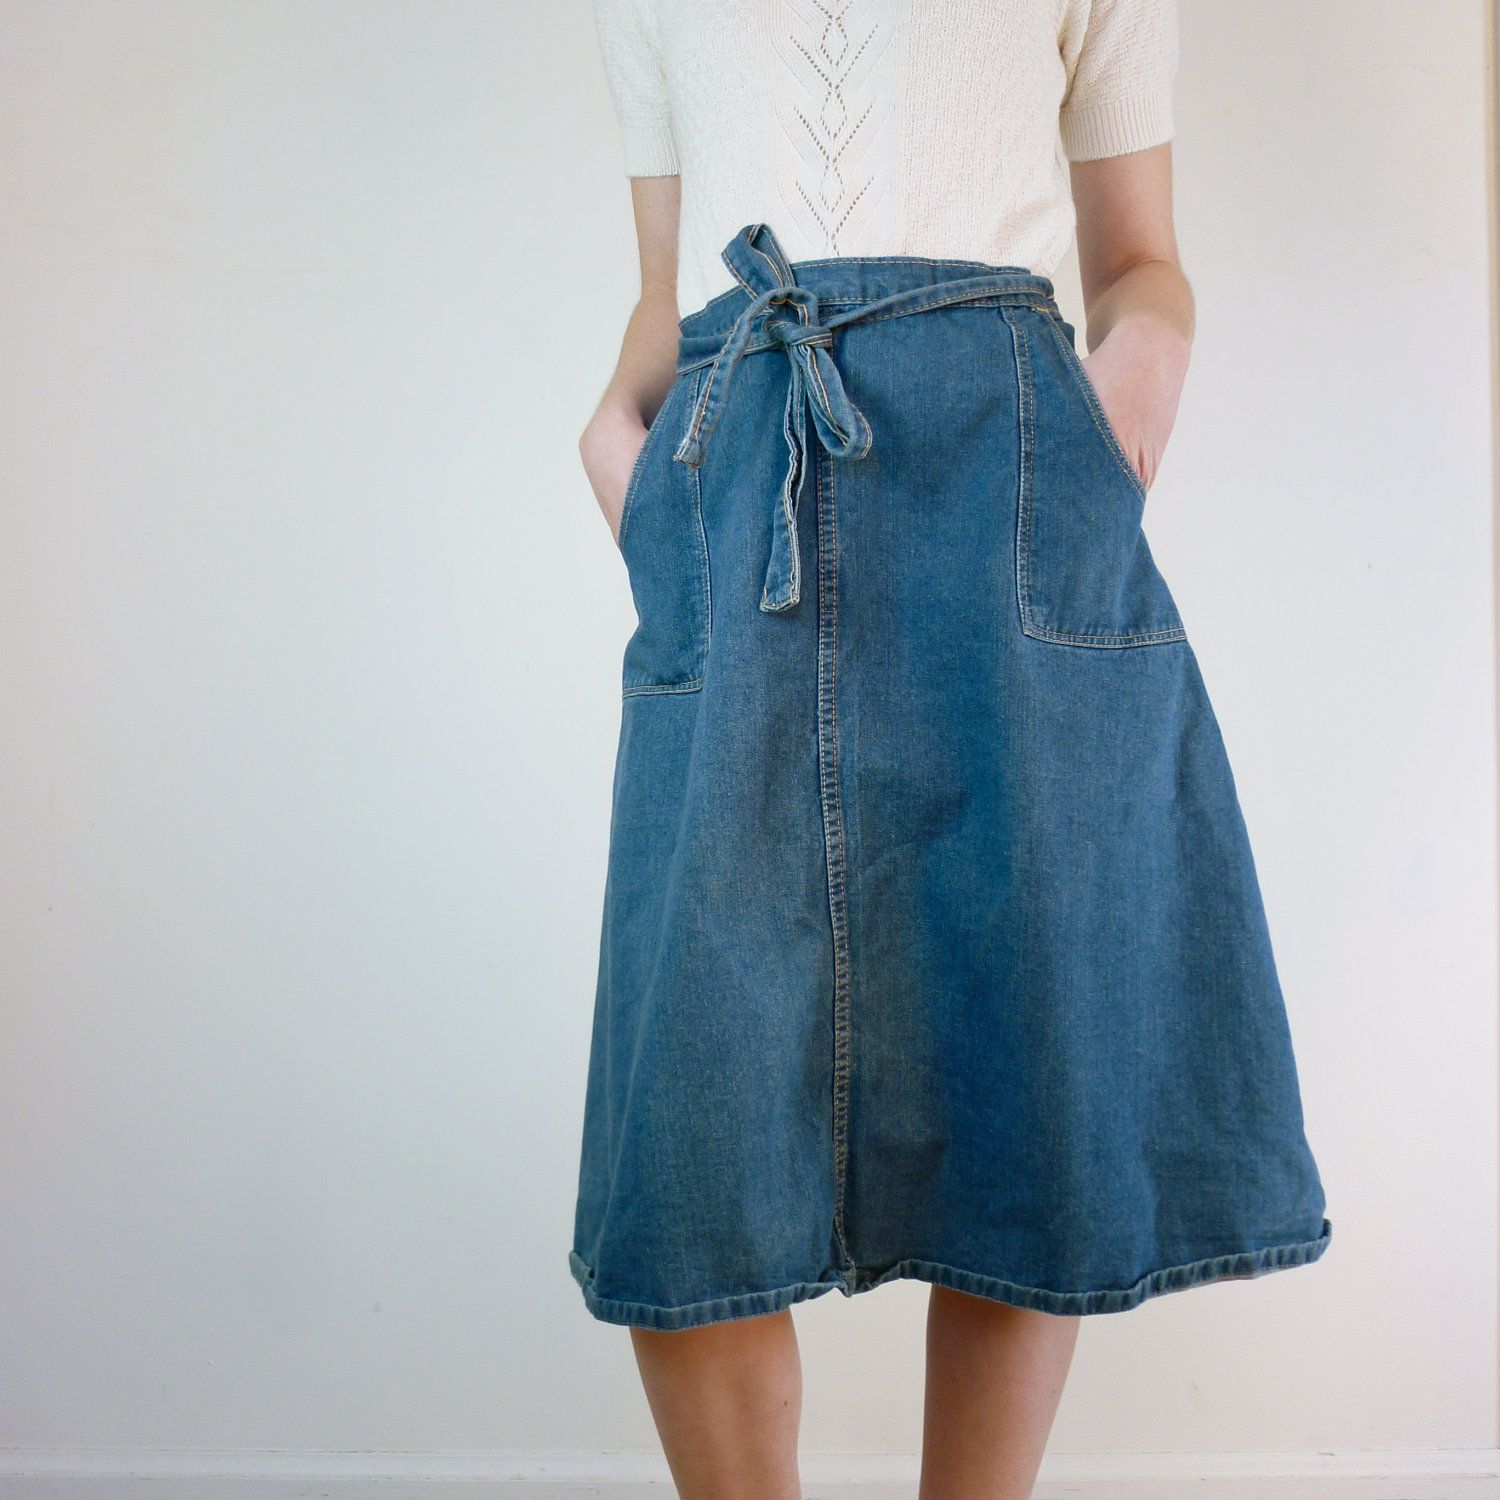 Denim Wrap Skirt / Jean Wrap Around Skirt | Jean skirt, Wraps and ...